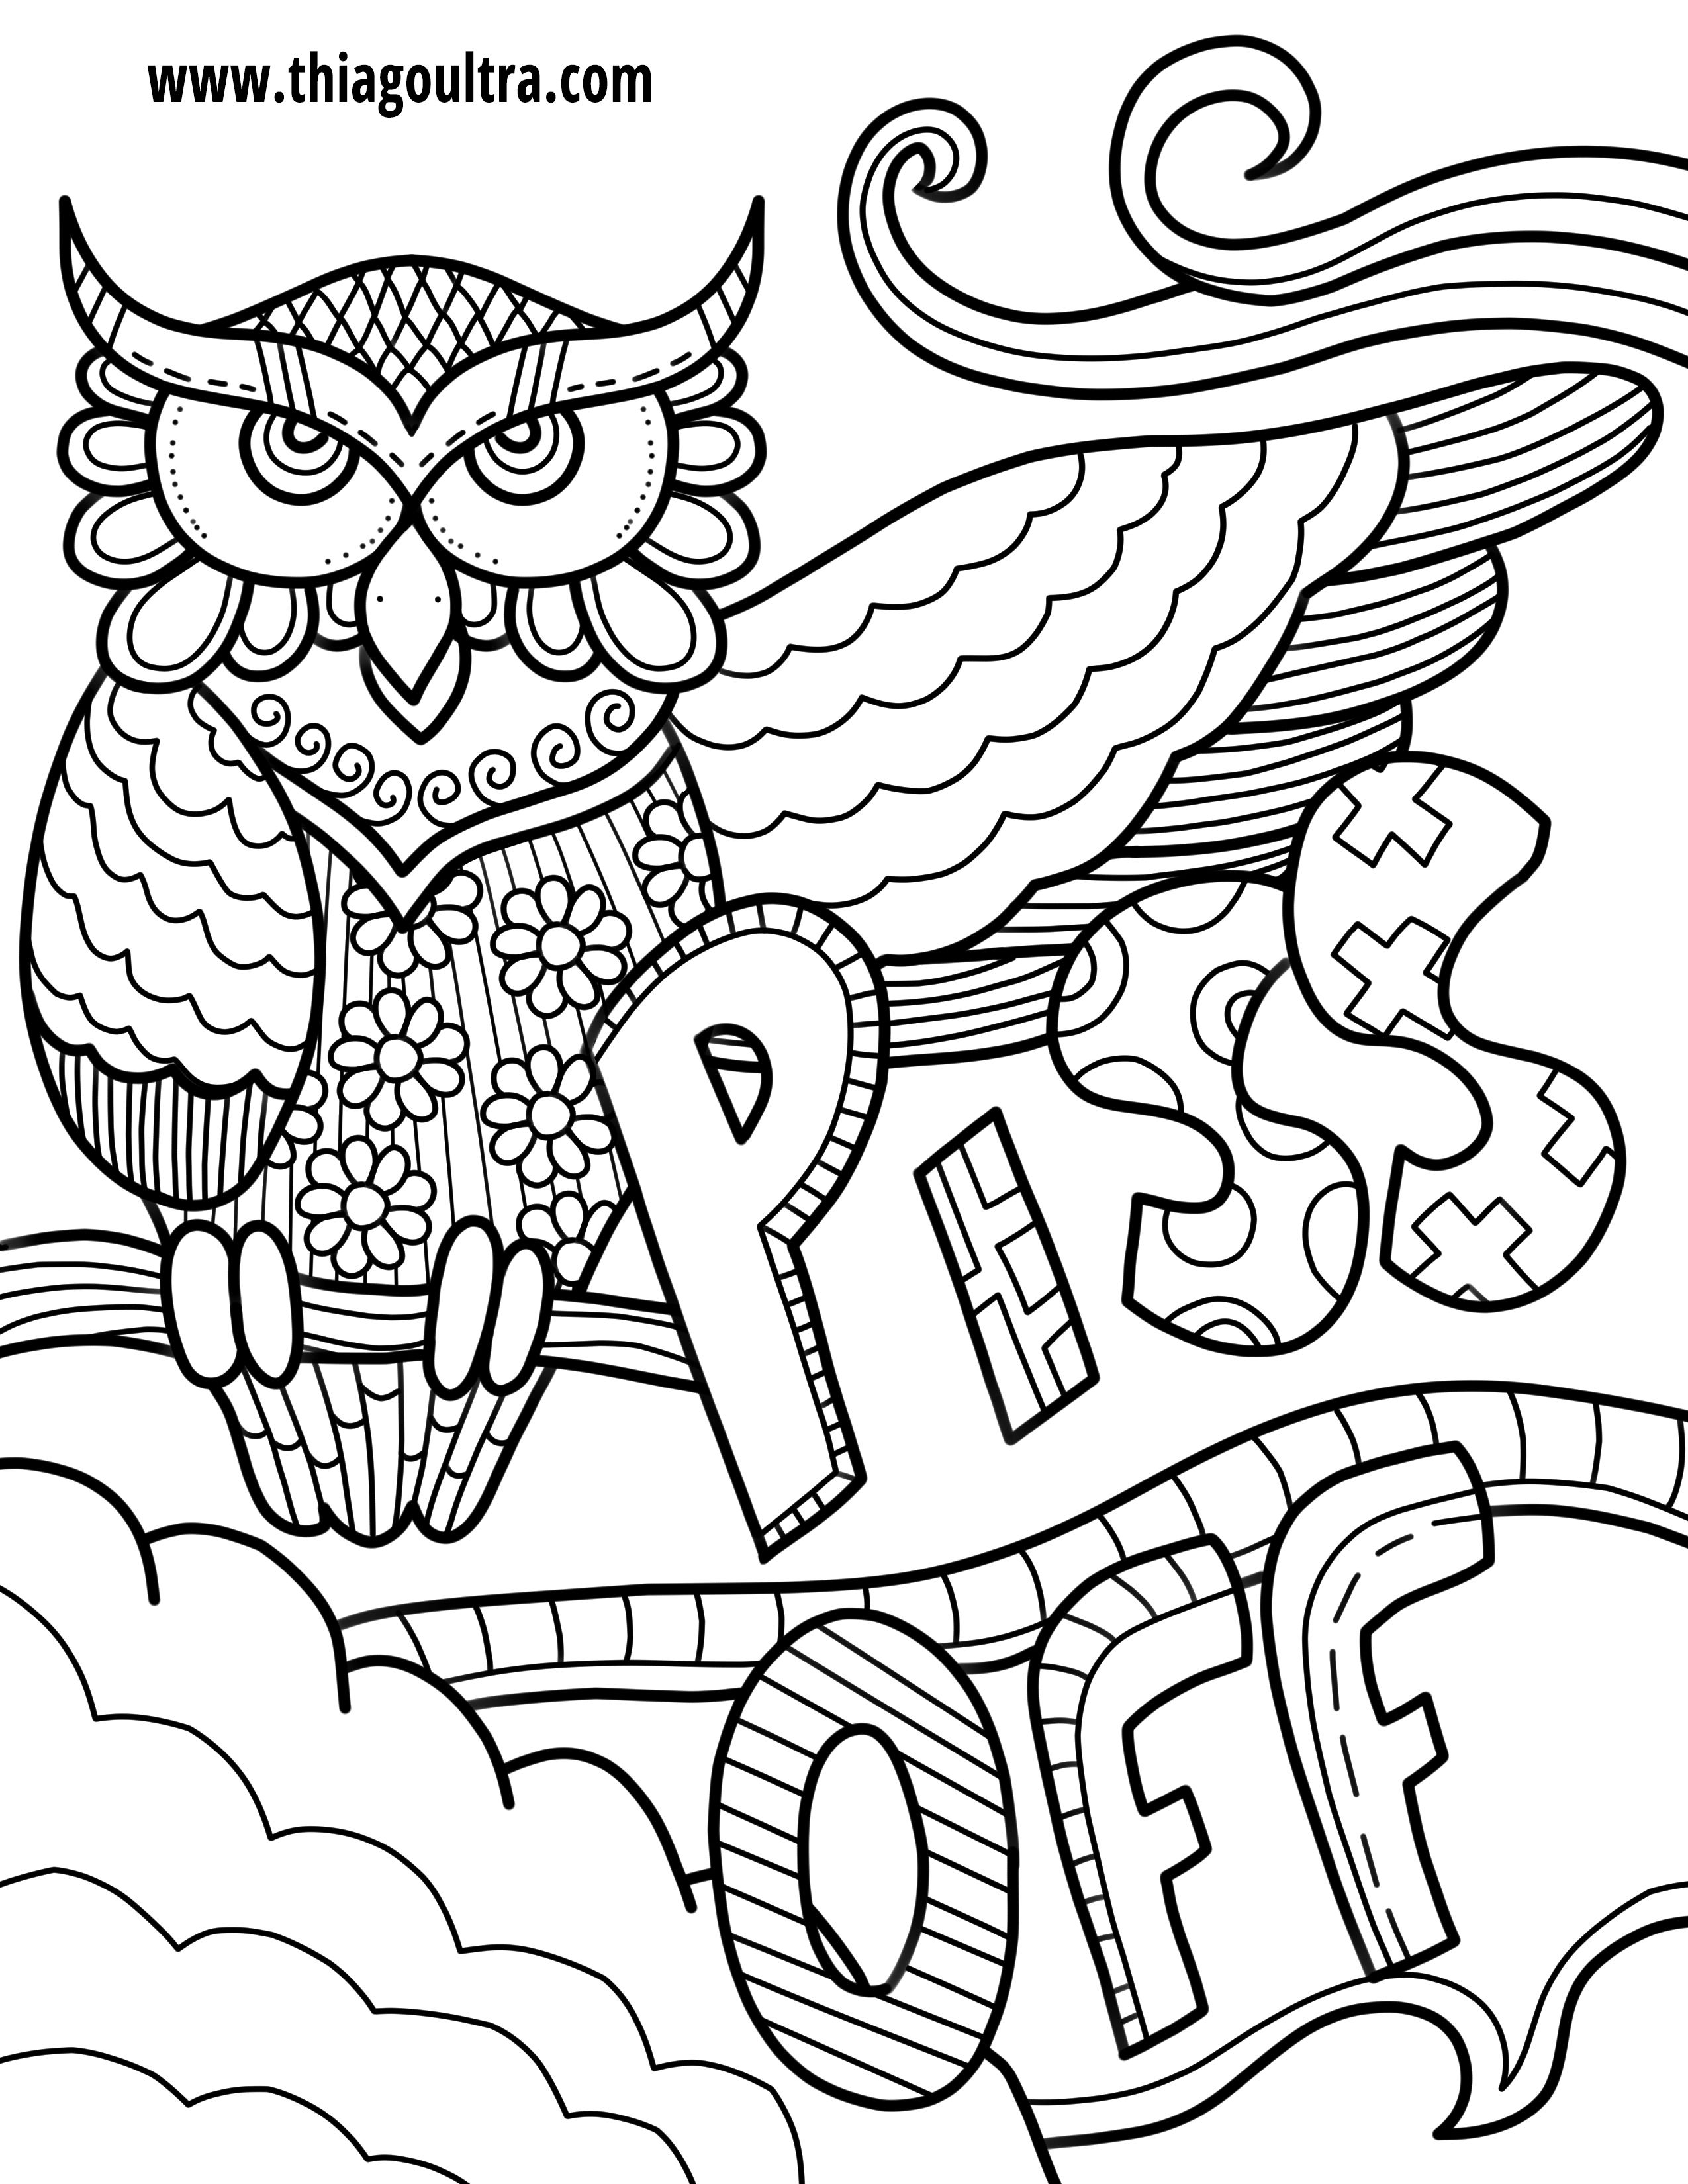 Pin on Adult-y Colouring Pages (free)